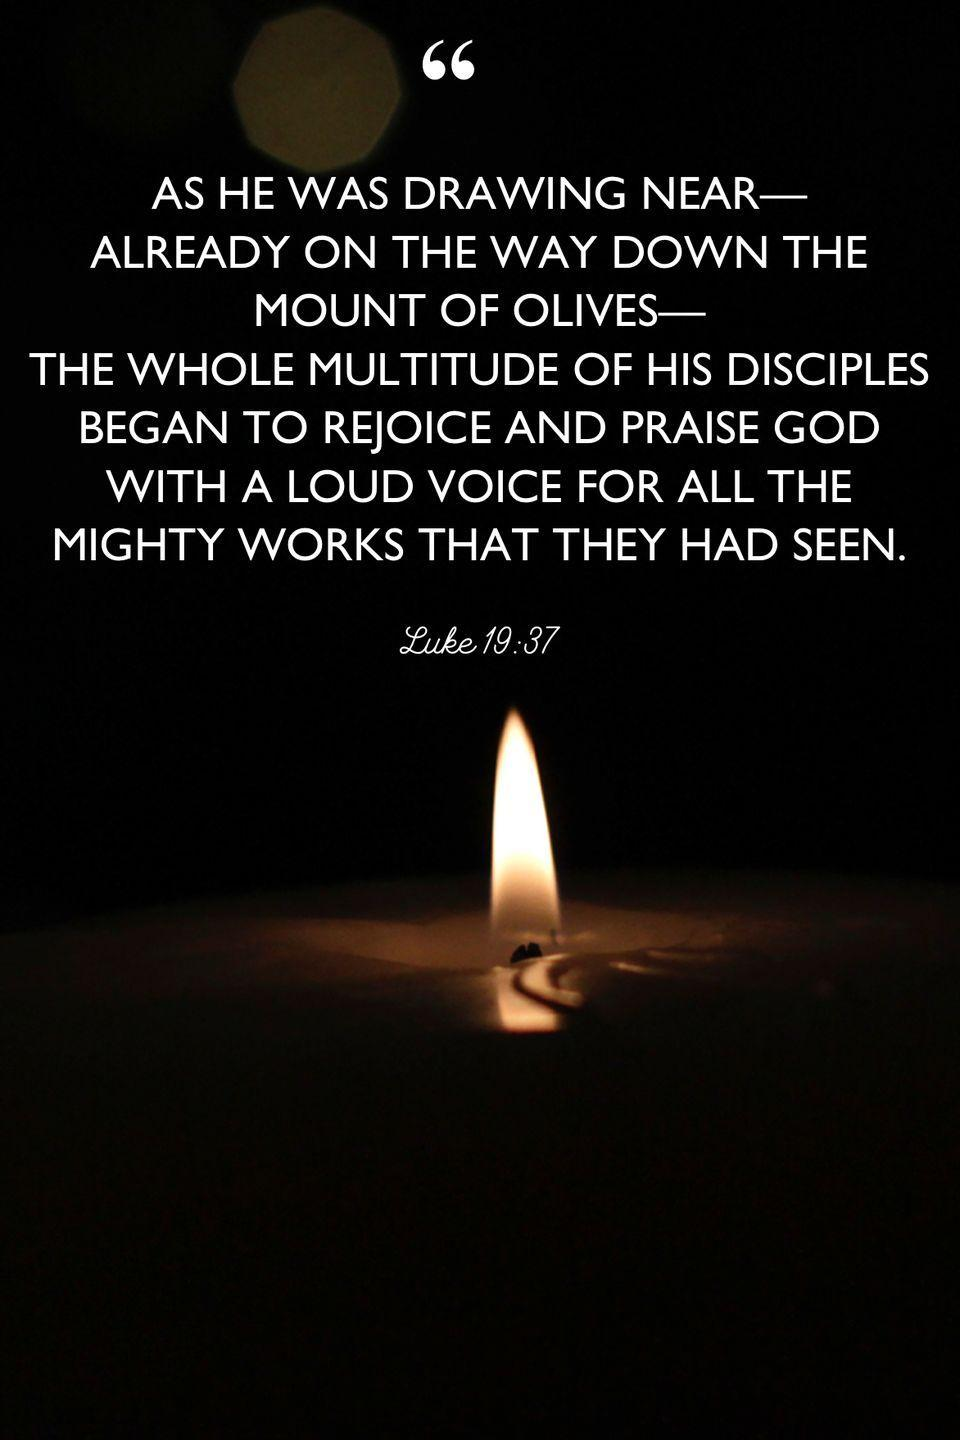 """<p>""""As he was drawing near—already on the way down the Mount of Olives—the whole multitude of his disciples began to rejoice and praise God with a loud voice for all the mighty works that they had seen.""""</p>"""